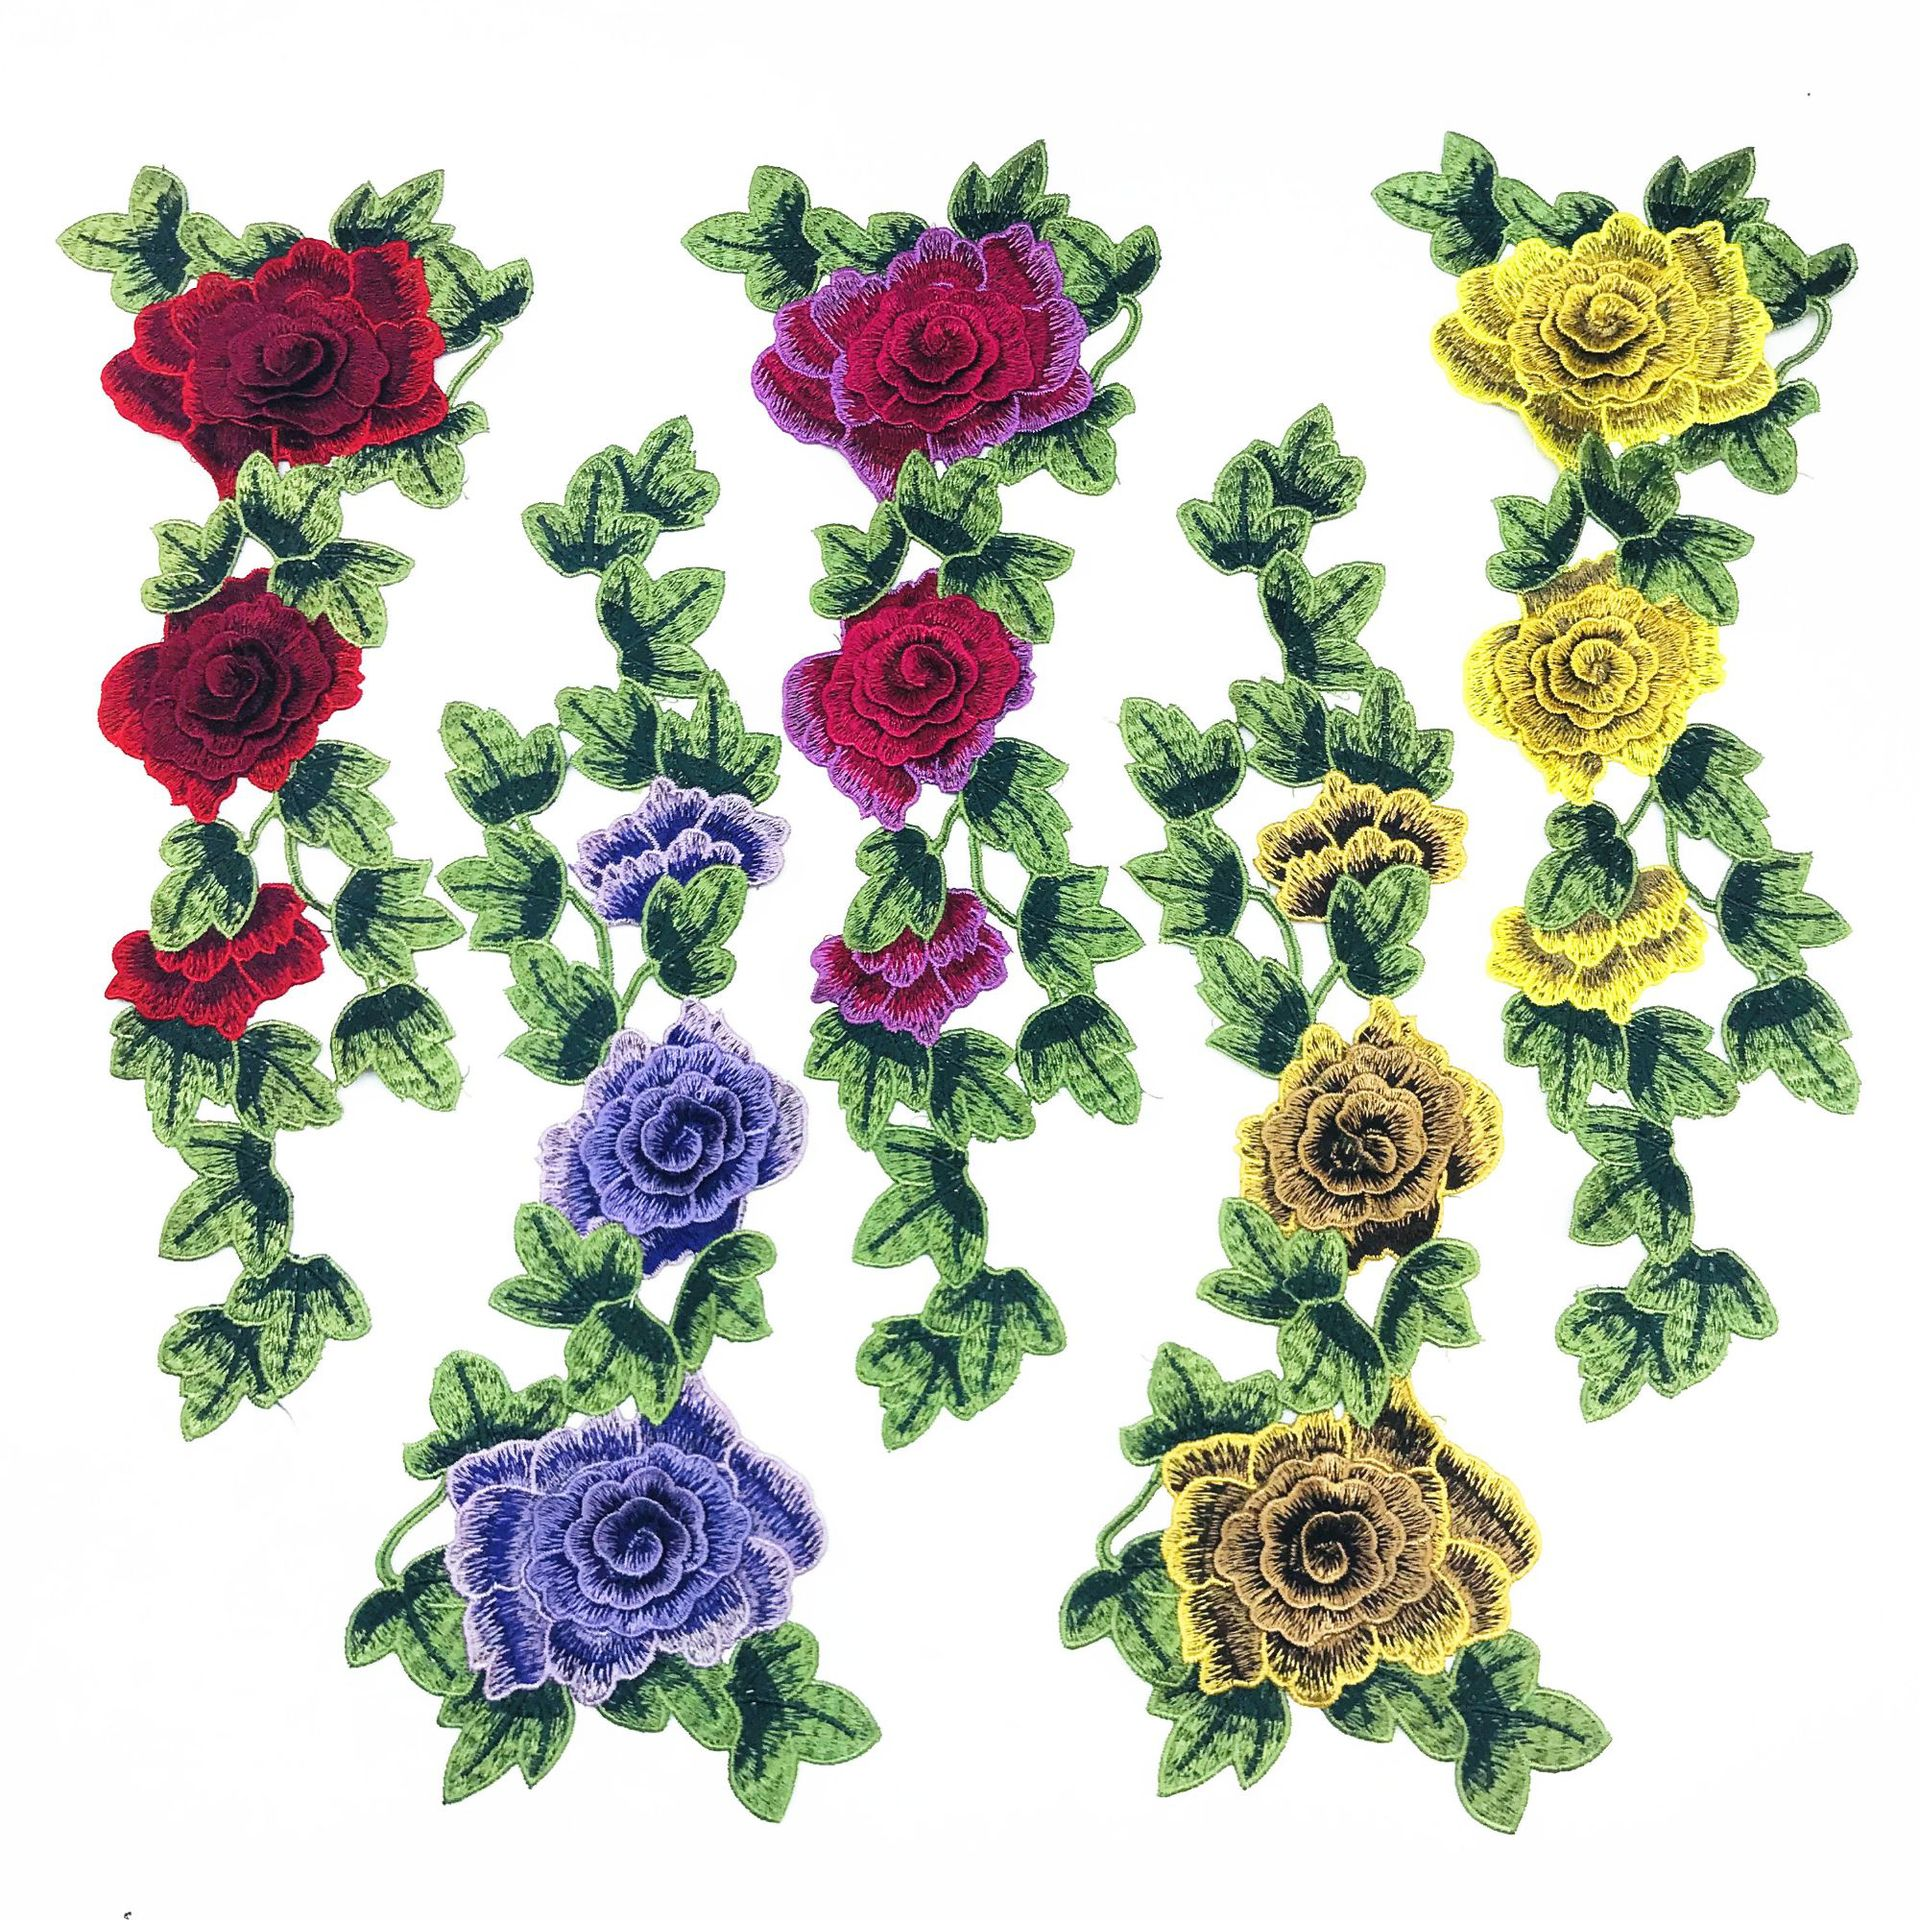 3D DIY Applique Water Soluble Embroidery  Costume Decoration Dimensional Colorful Decals Applique Accessories